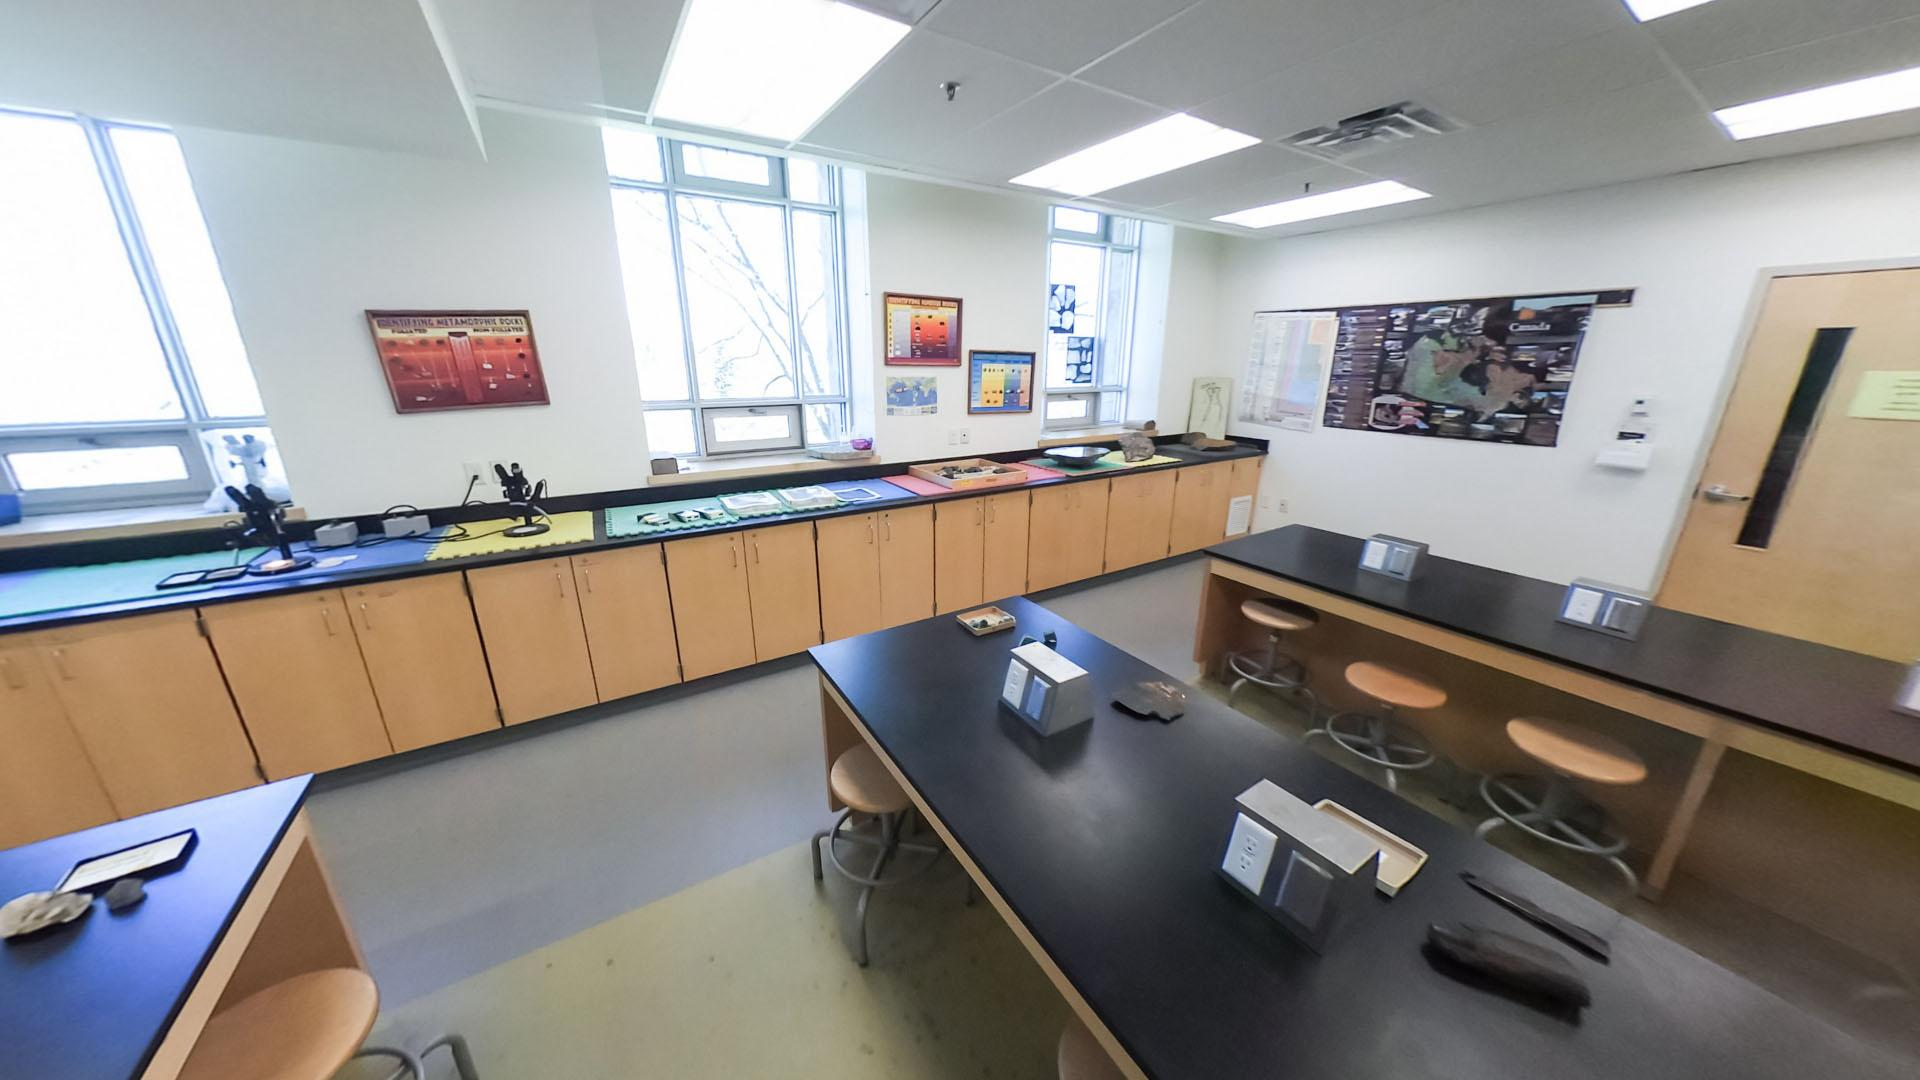 ROCK AND MINERAL ANALYSIS LAB